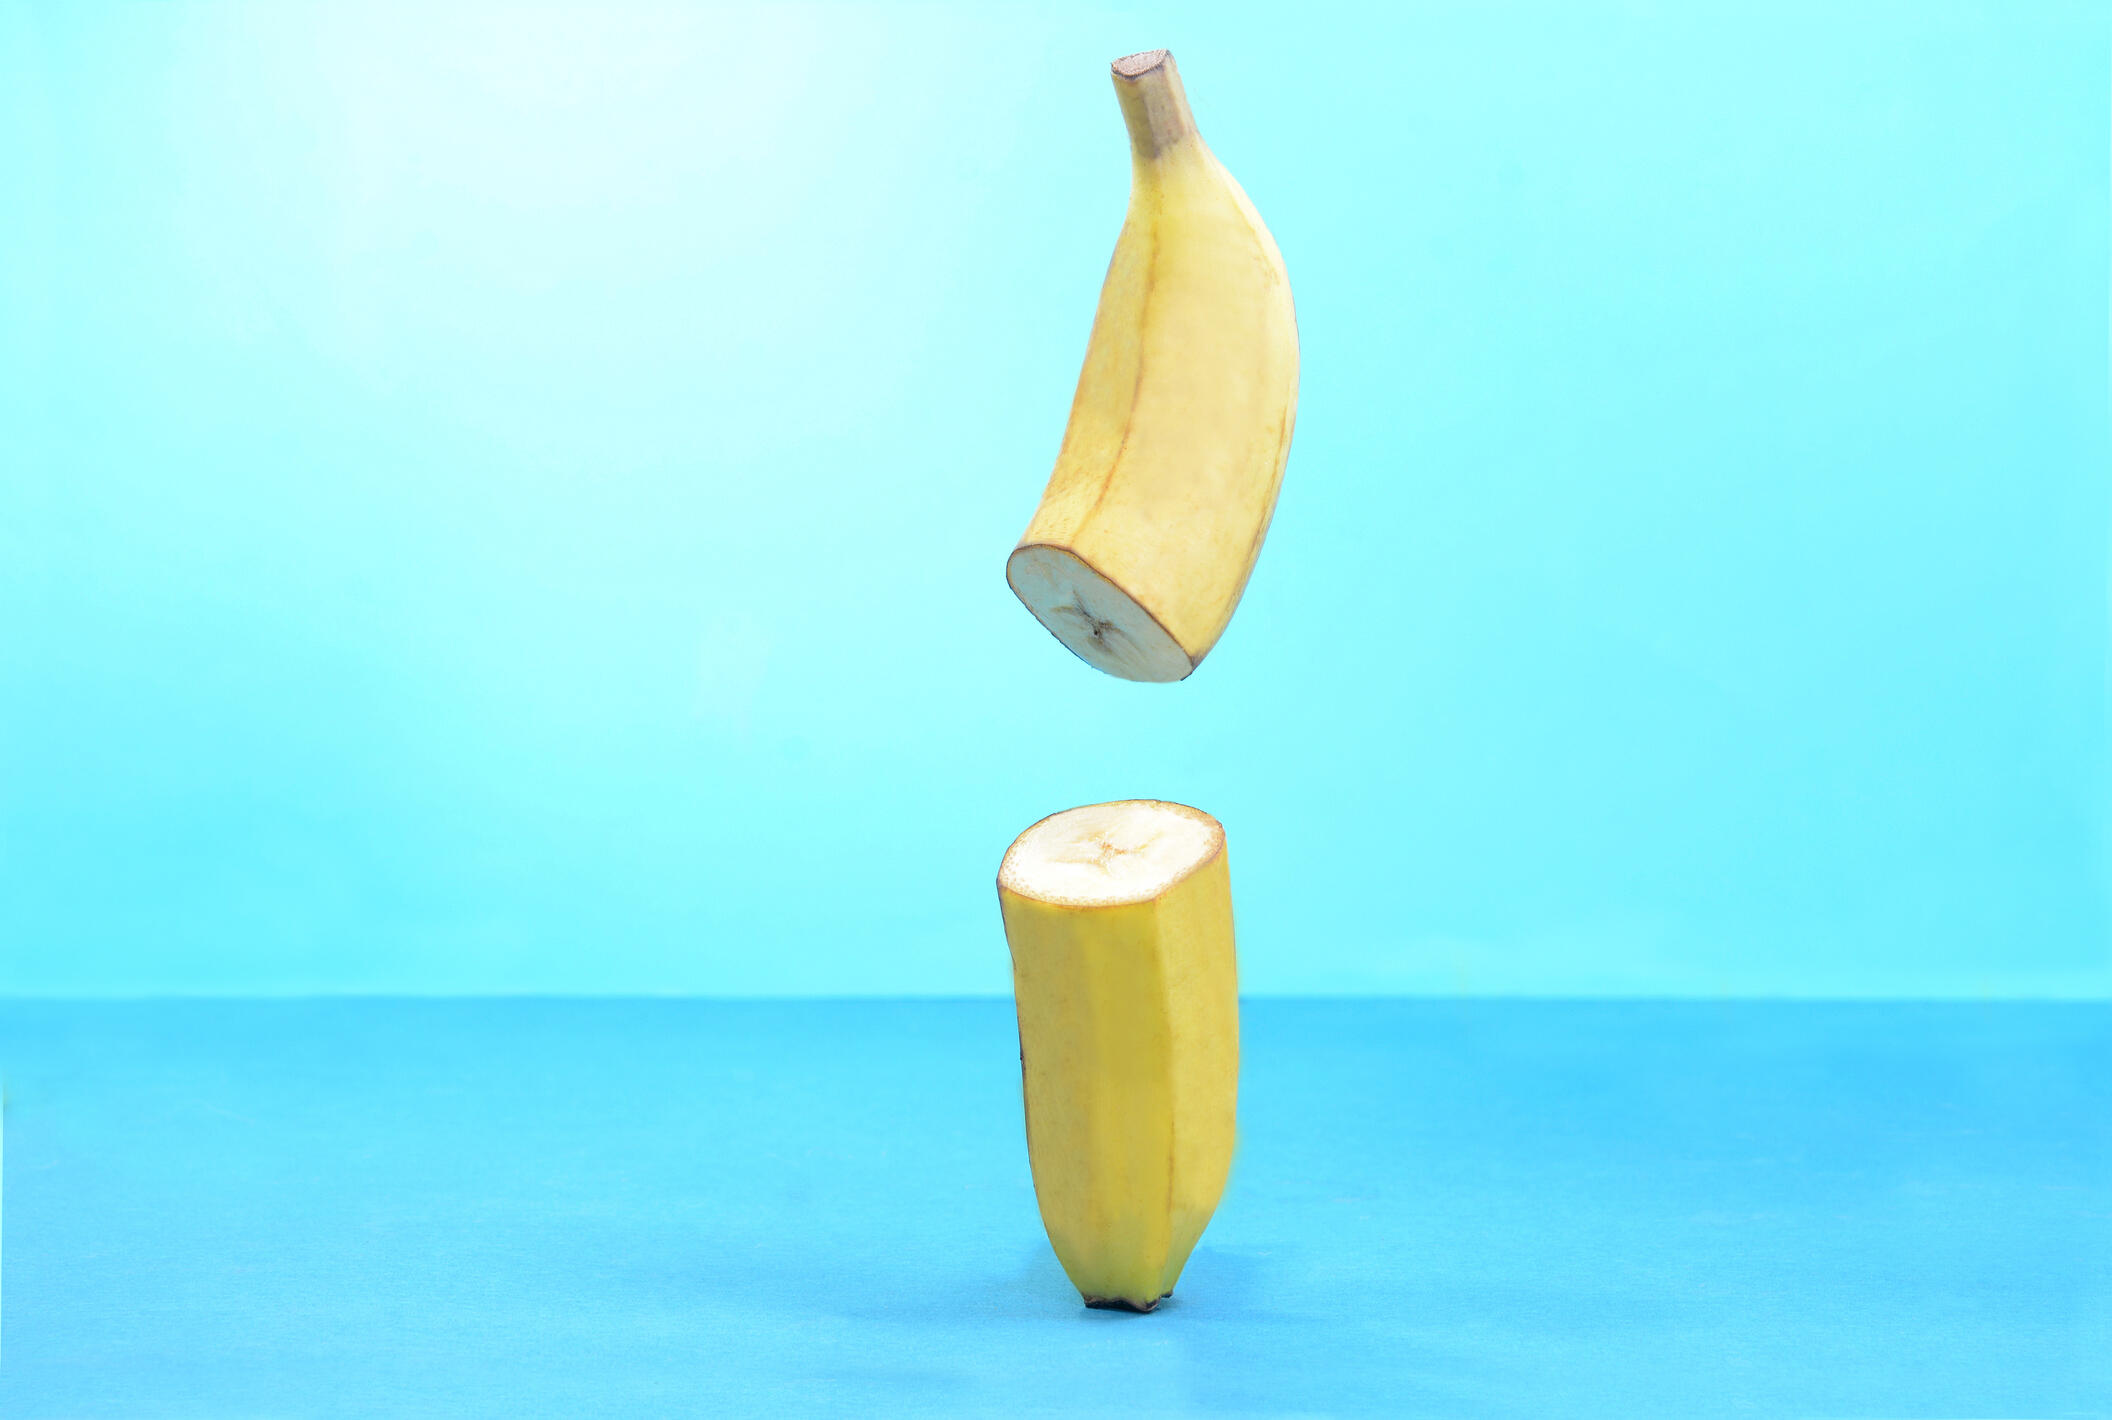 banana sliced in half on blue background